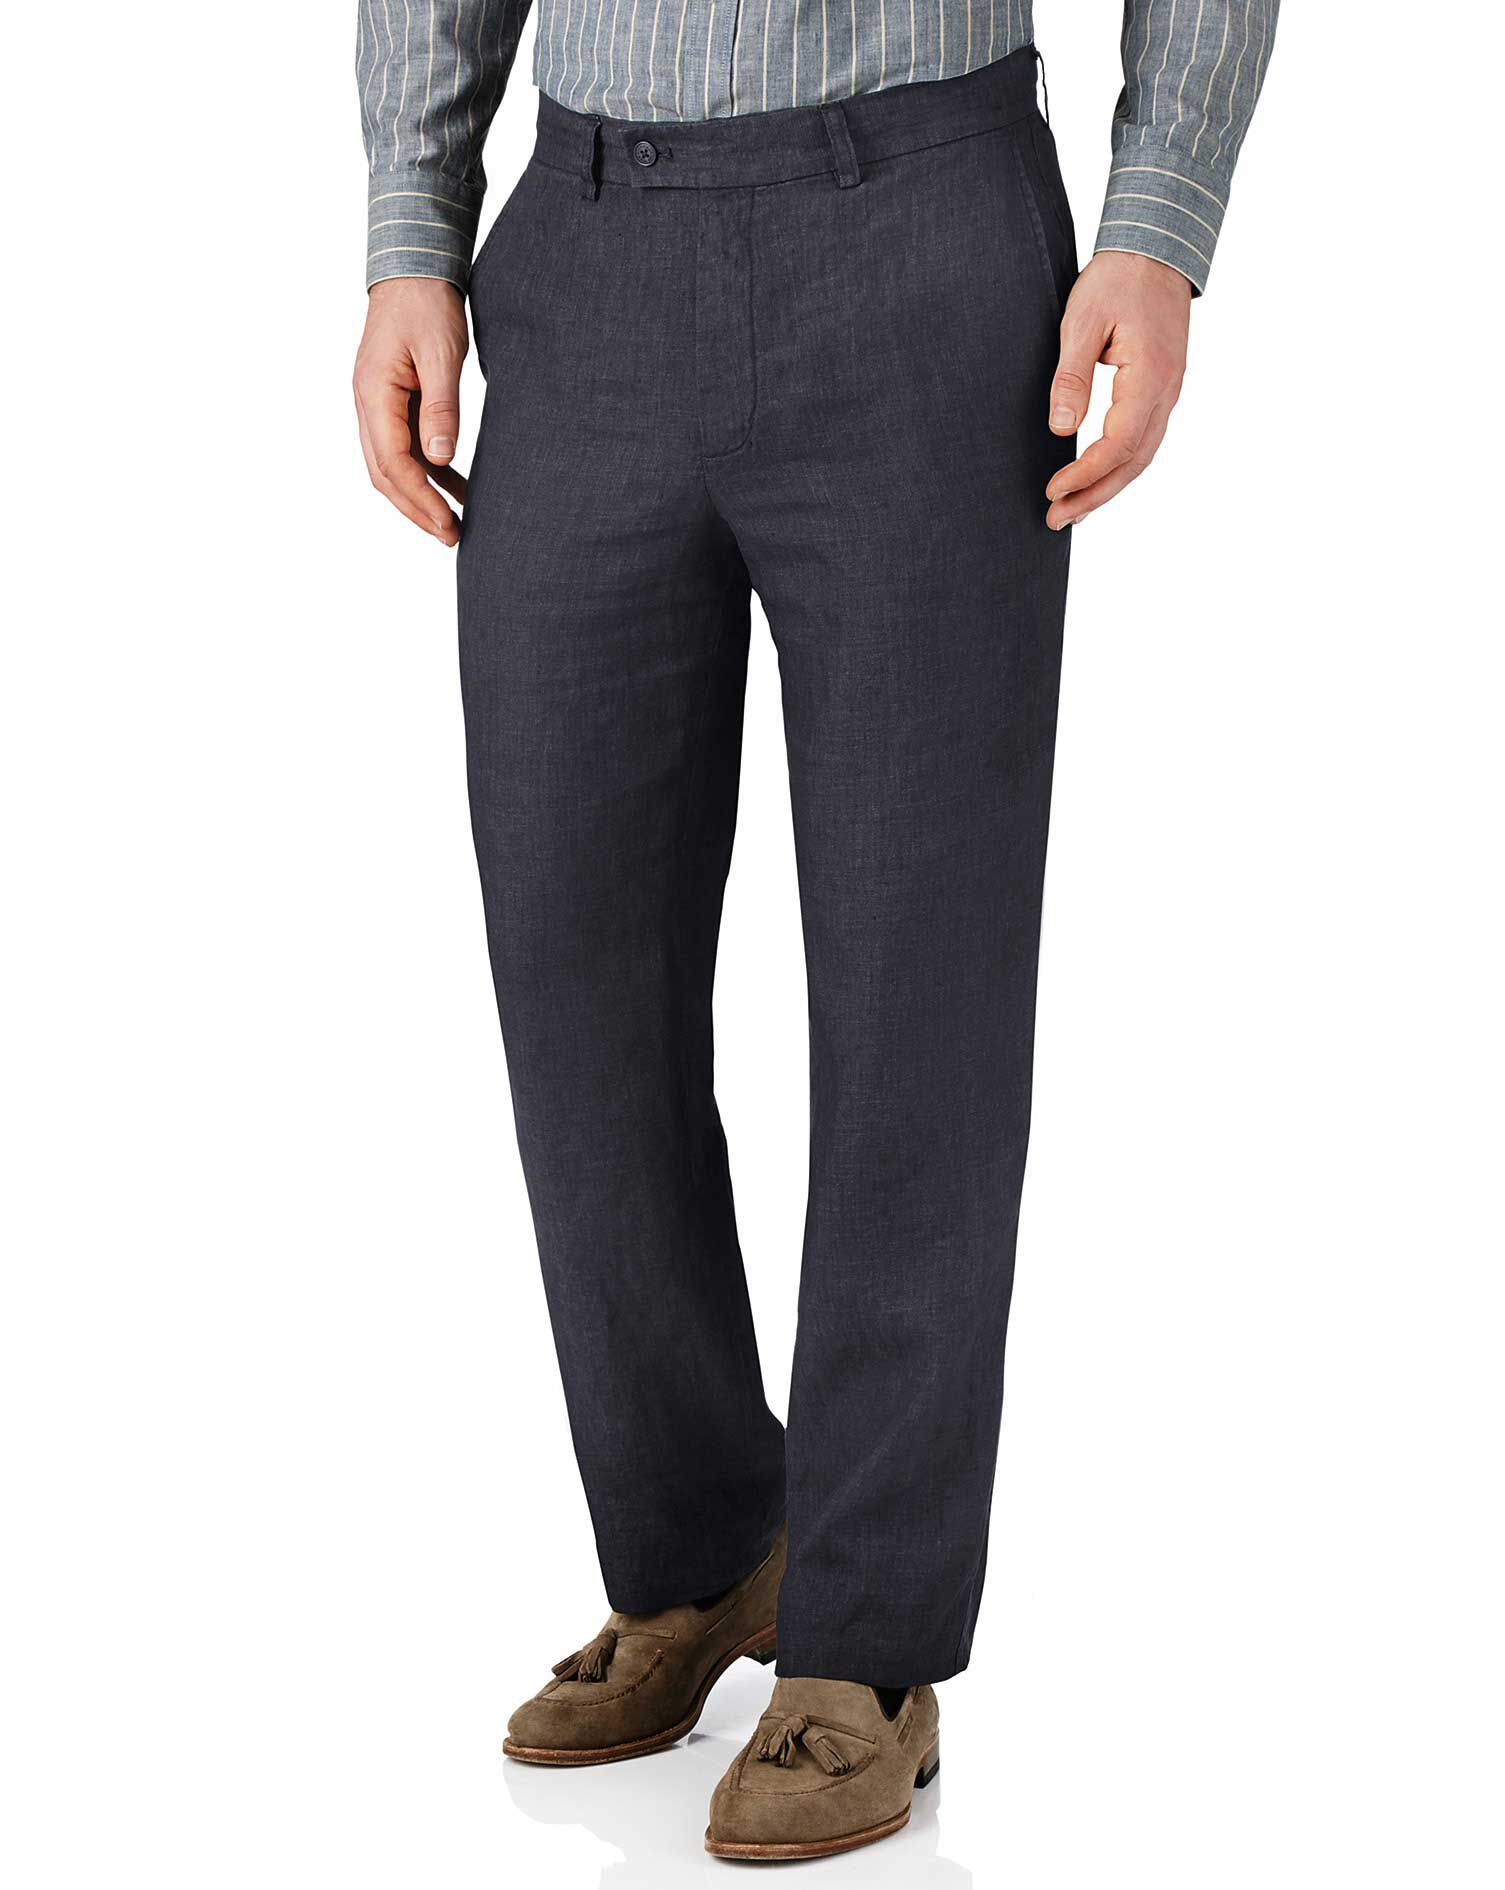 Navy Classic Fit Linen Trousers Size W38 L34 by Charles Tyrwhitt